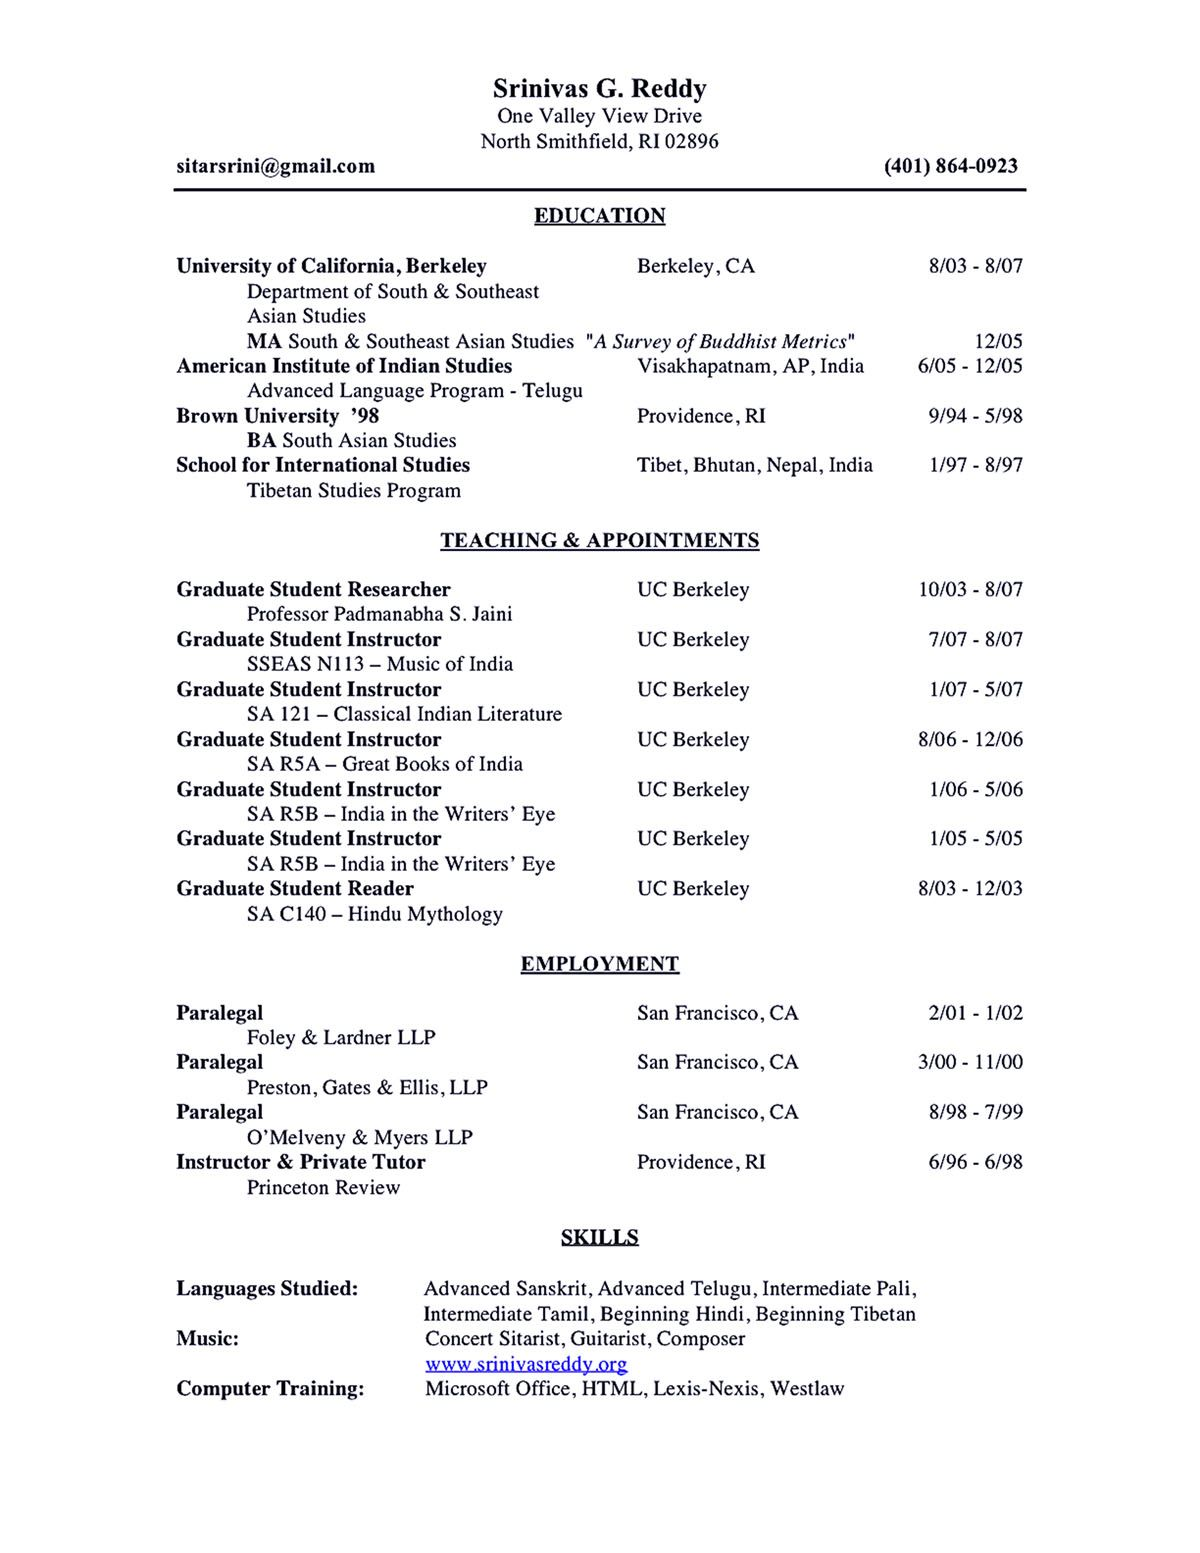 academic resume sample shows you how to make academic resume academic resume sample shows you how to make academic resume outstandingly so the resume will get